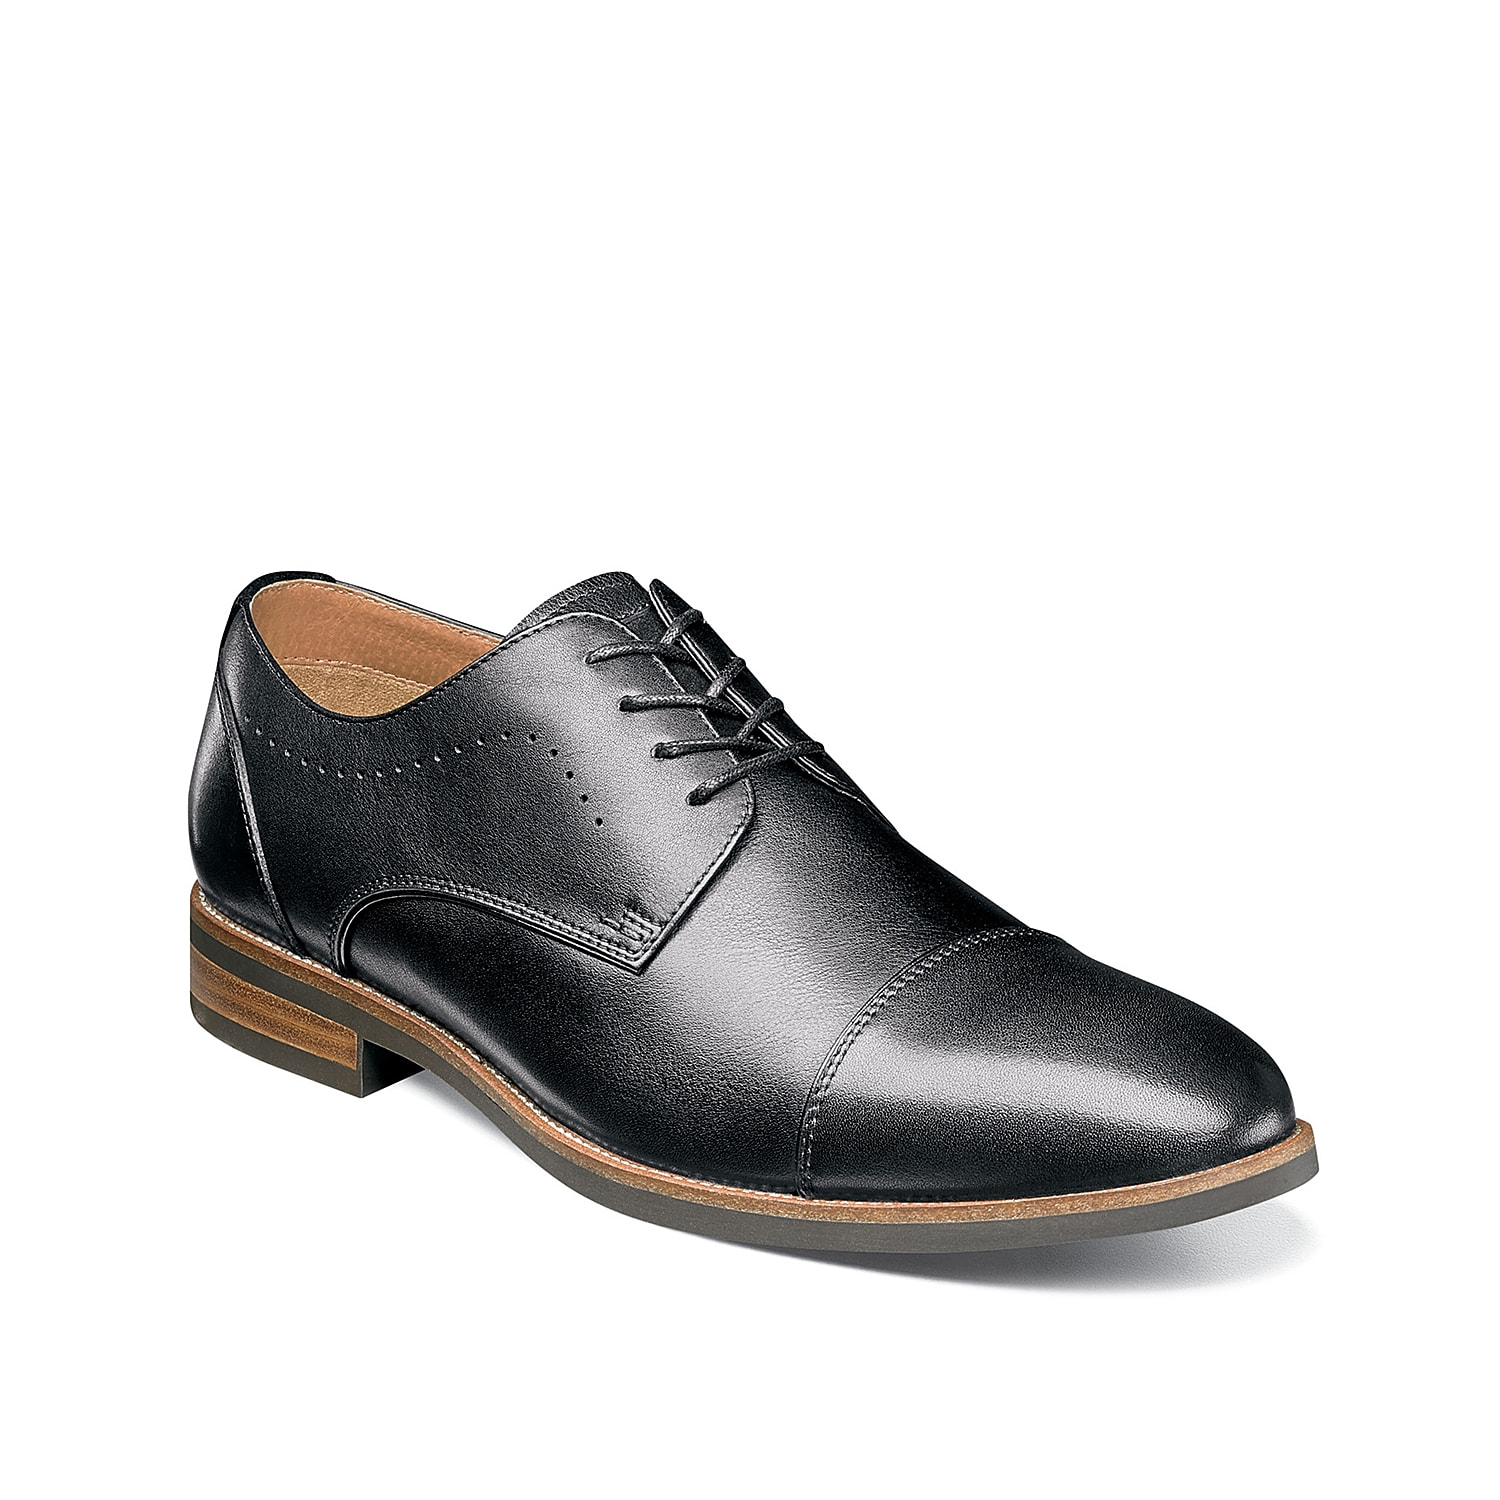 The Upgrade cap toe oxford rocks classic style with modern comfort. This leather lace-up features a subtle perforated accent and OrthoLite™ footbed for your new favorite pair.